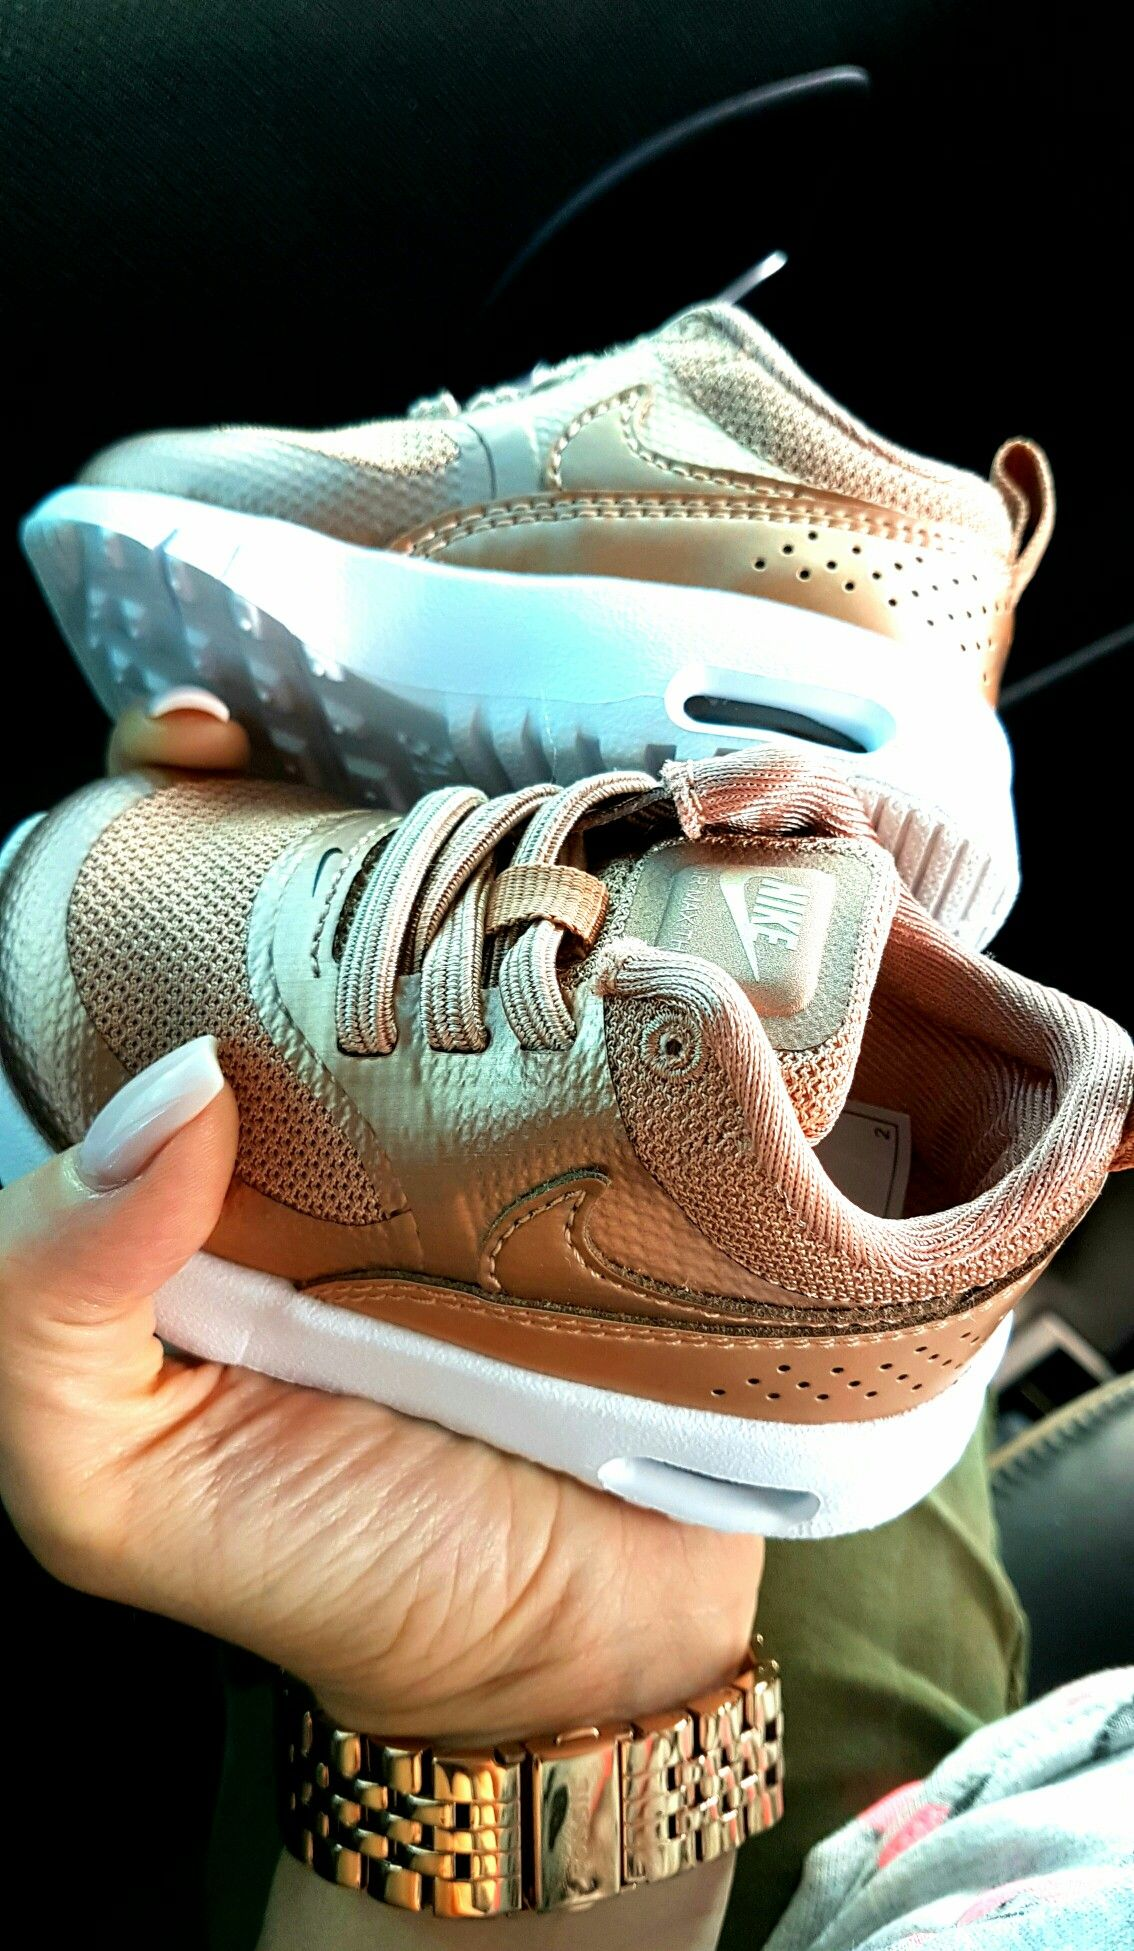 Air Gold Baby TheaOutfit Nike Nike Rose Max xBWrdCoe